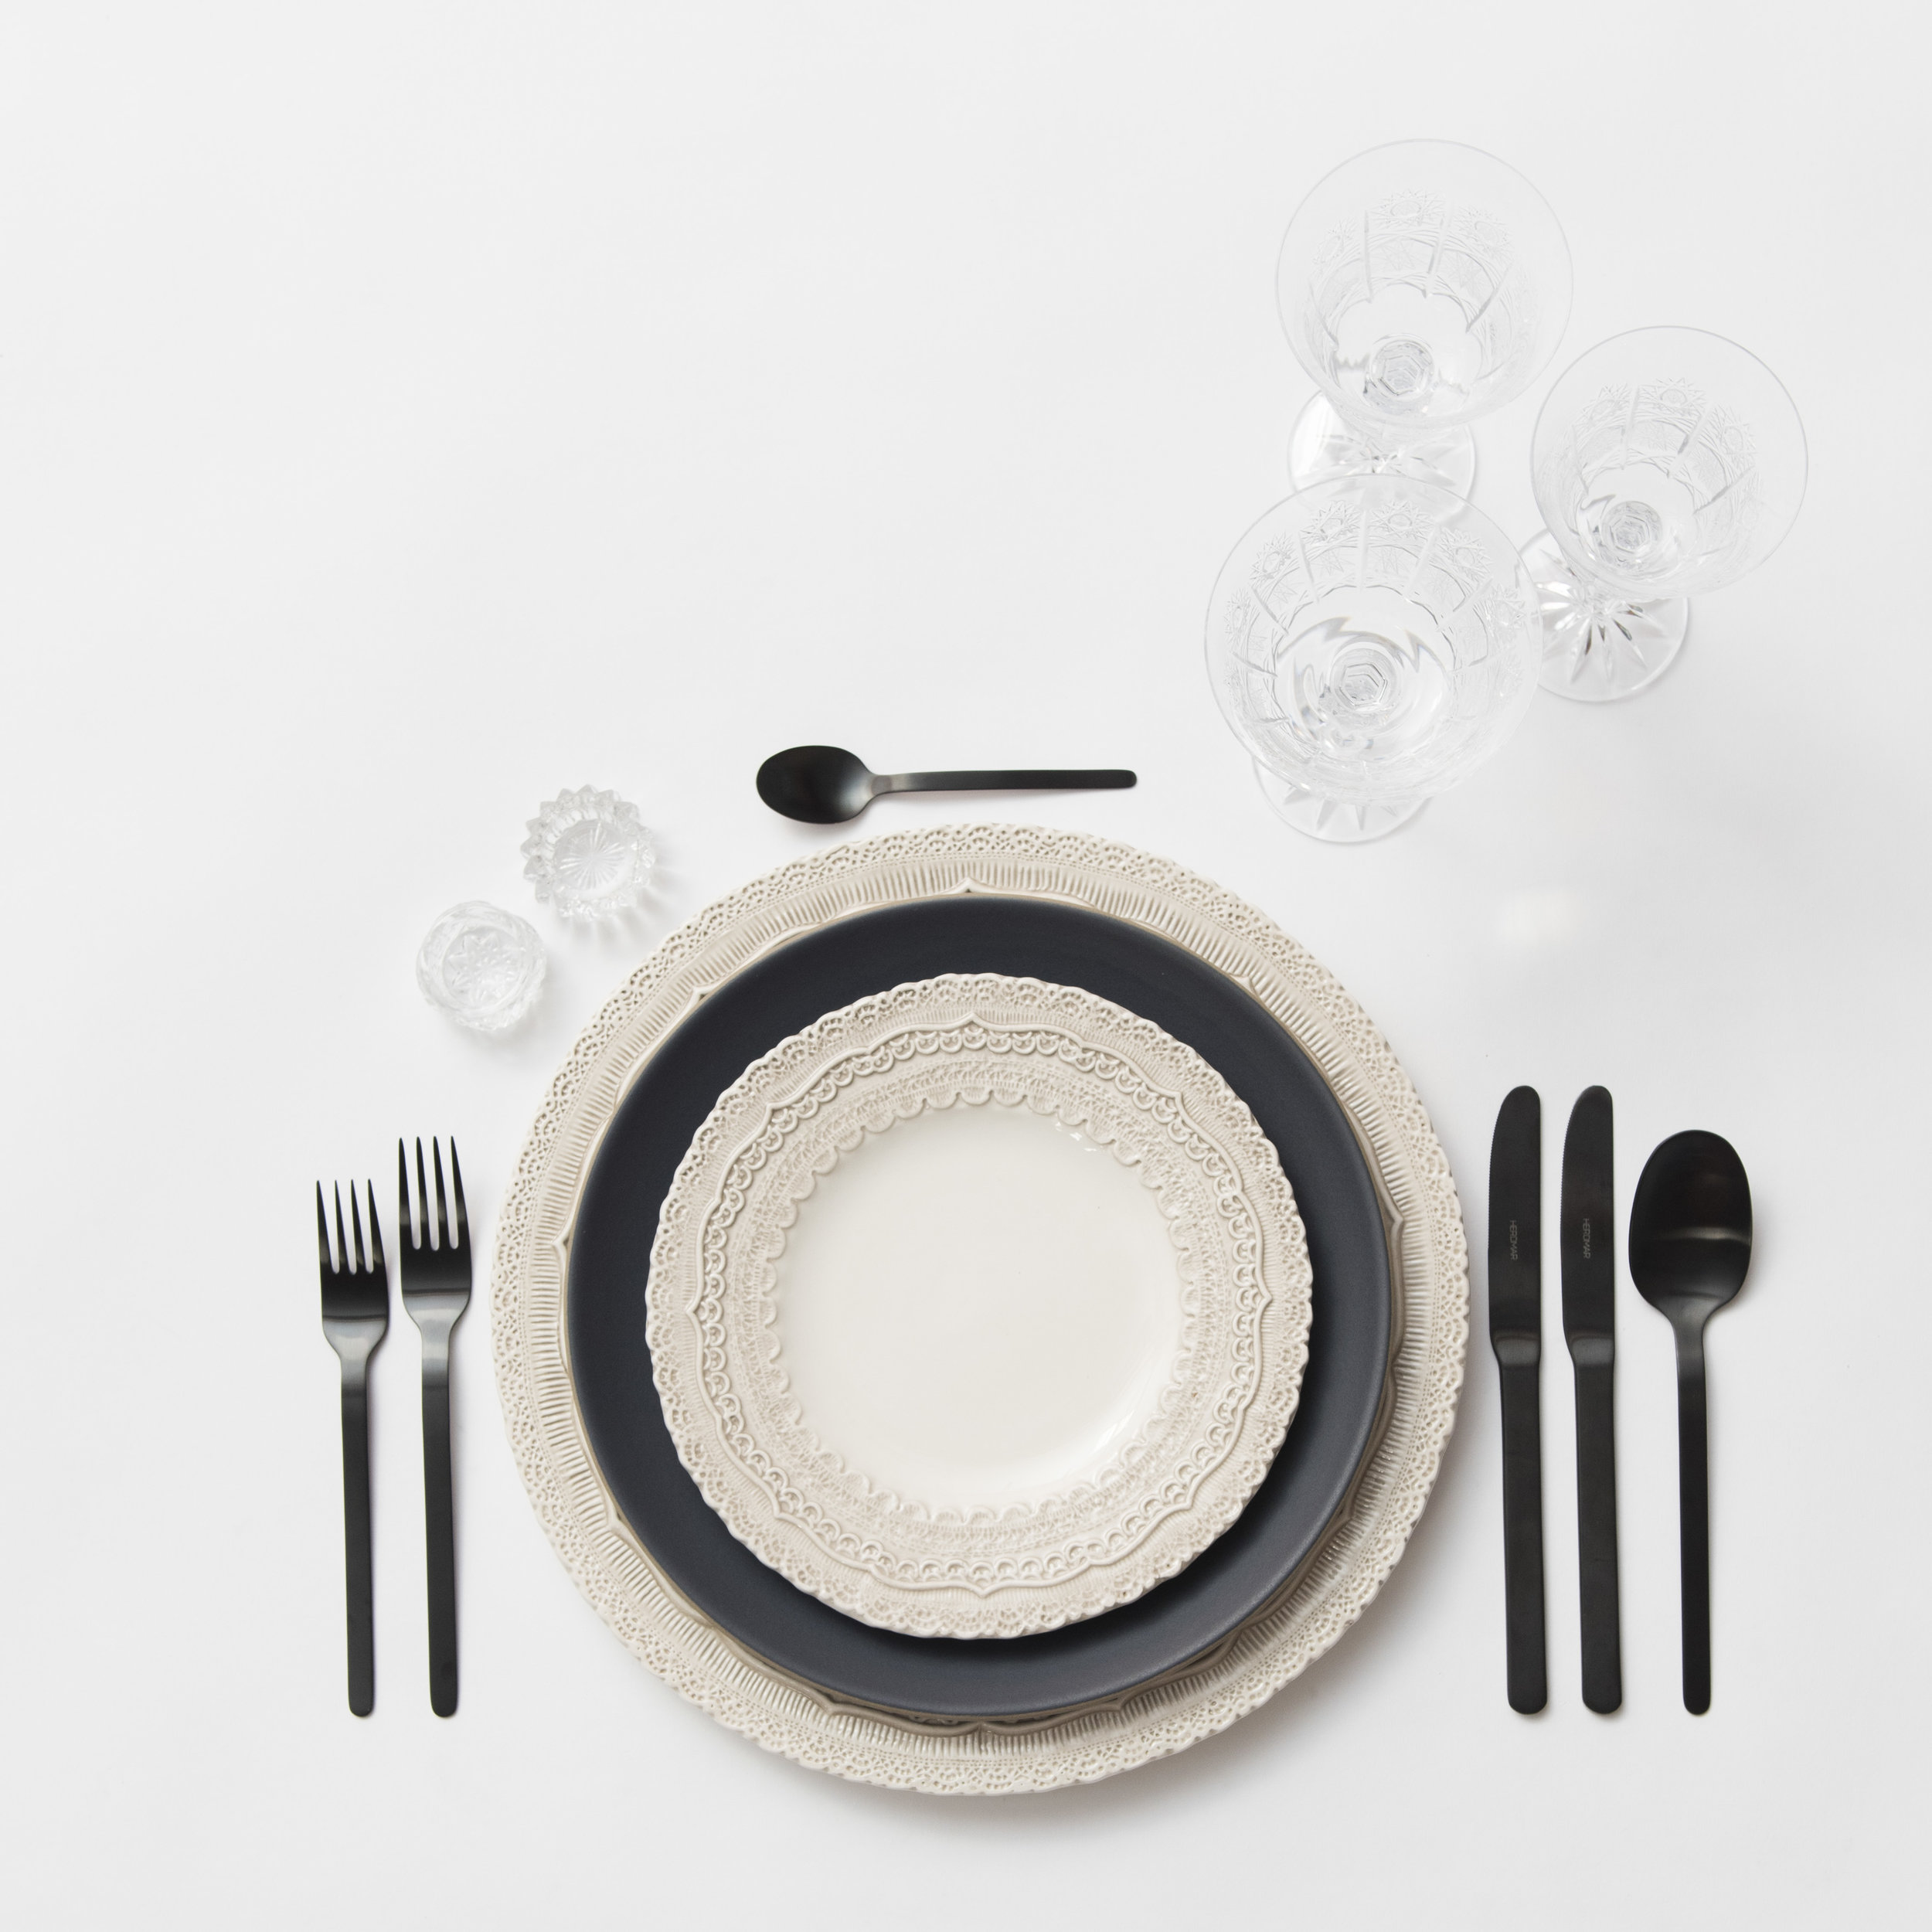 RENT: Lace Chargers/Dinnerware in White + Heath Ceramics in Indigo/Slate + Finn Flatware in Matte Black + Czech Crystal Stemware + Antique Crystal Salt Cellars